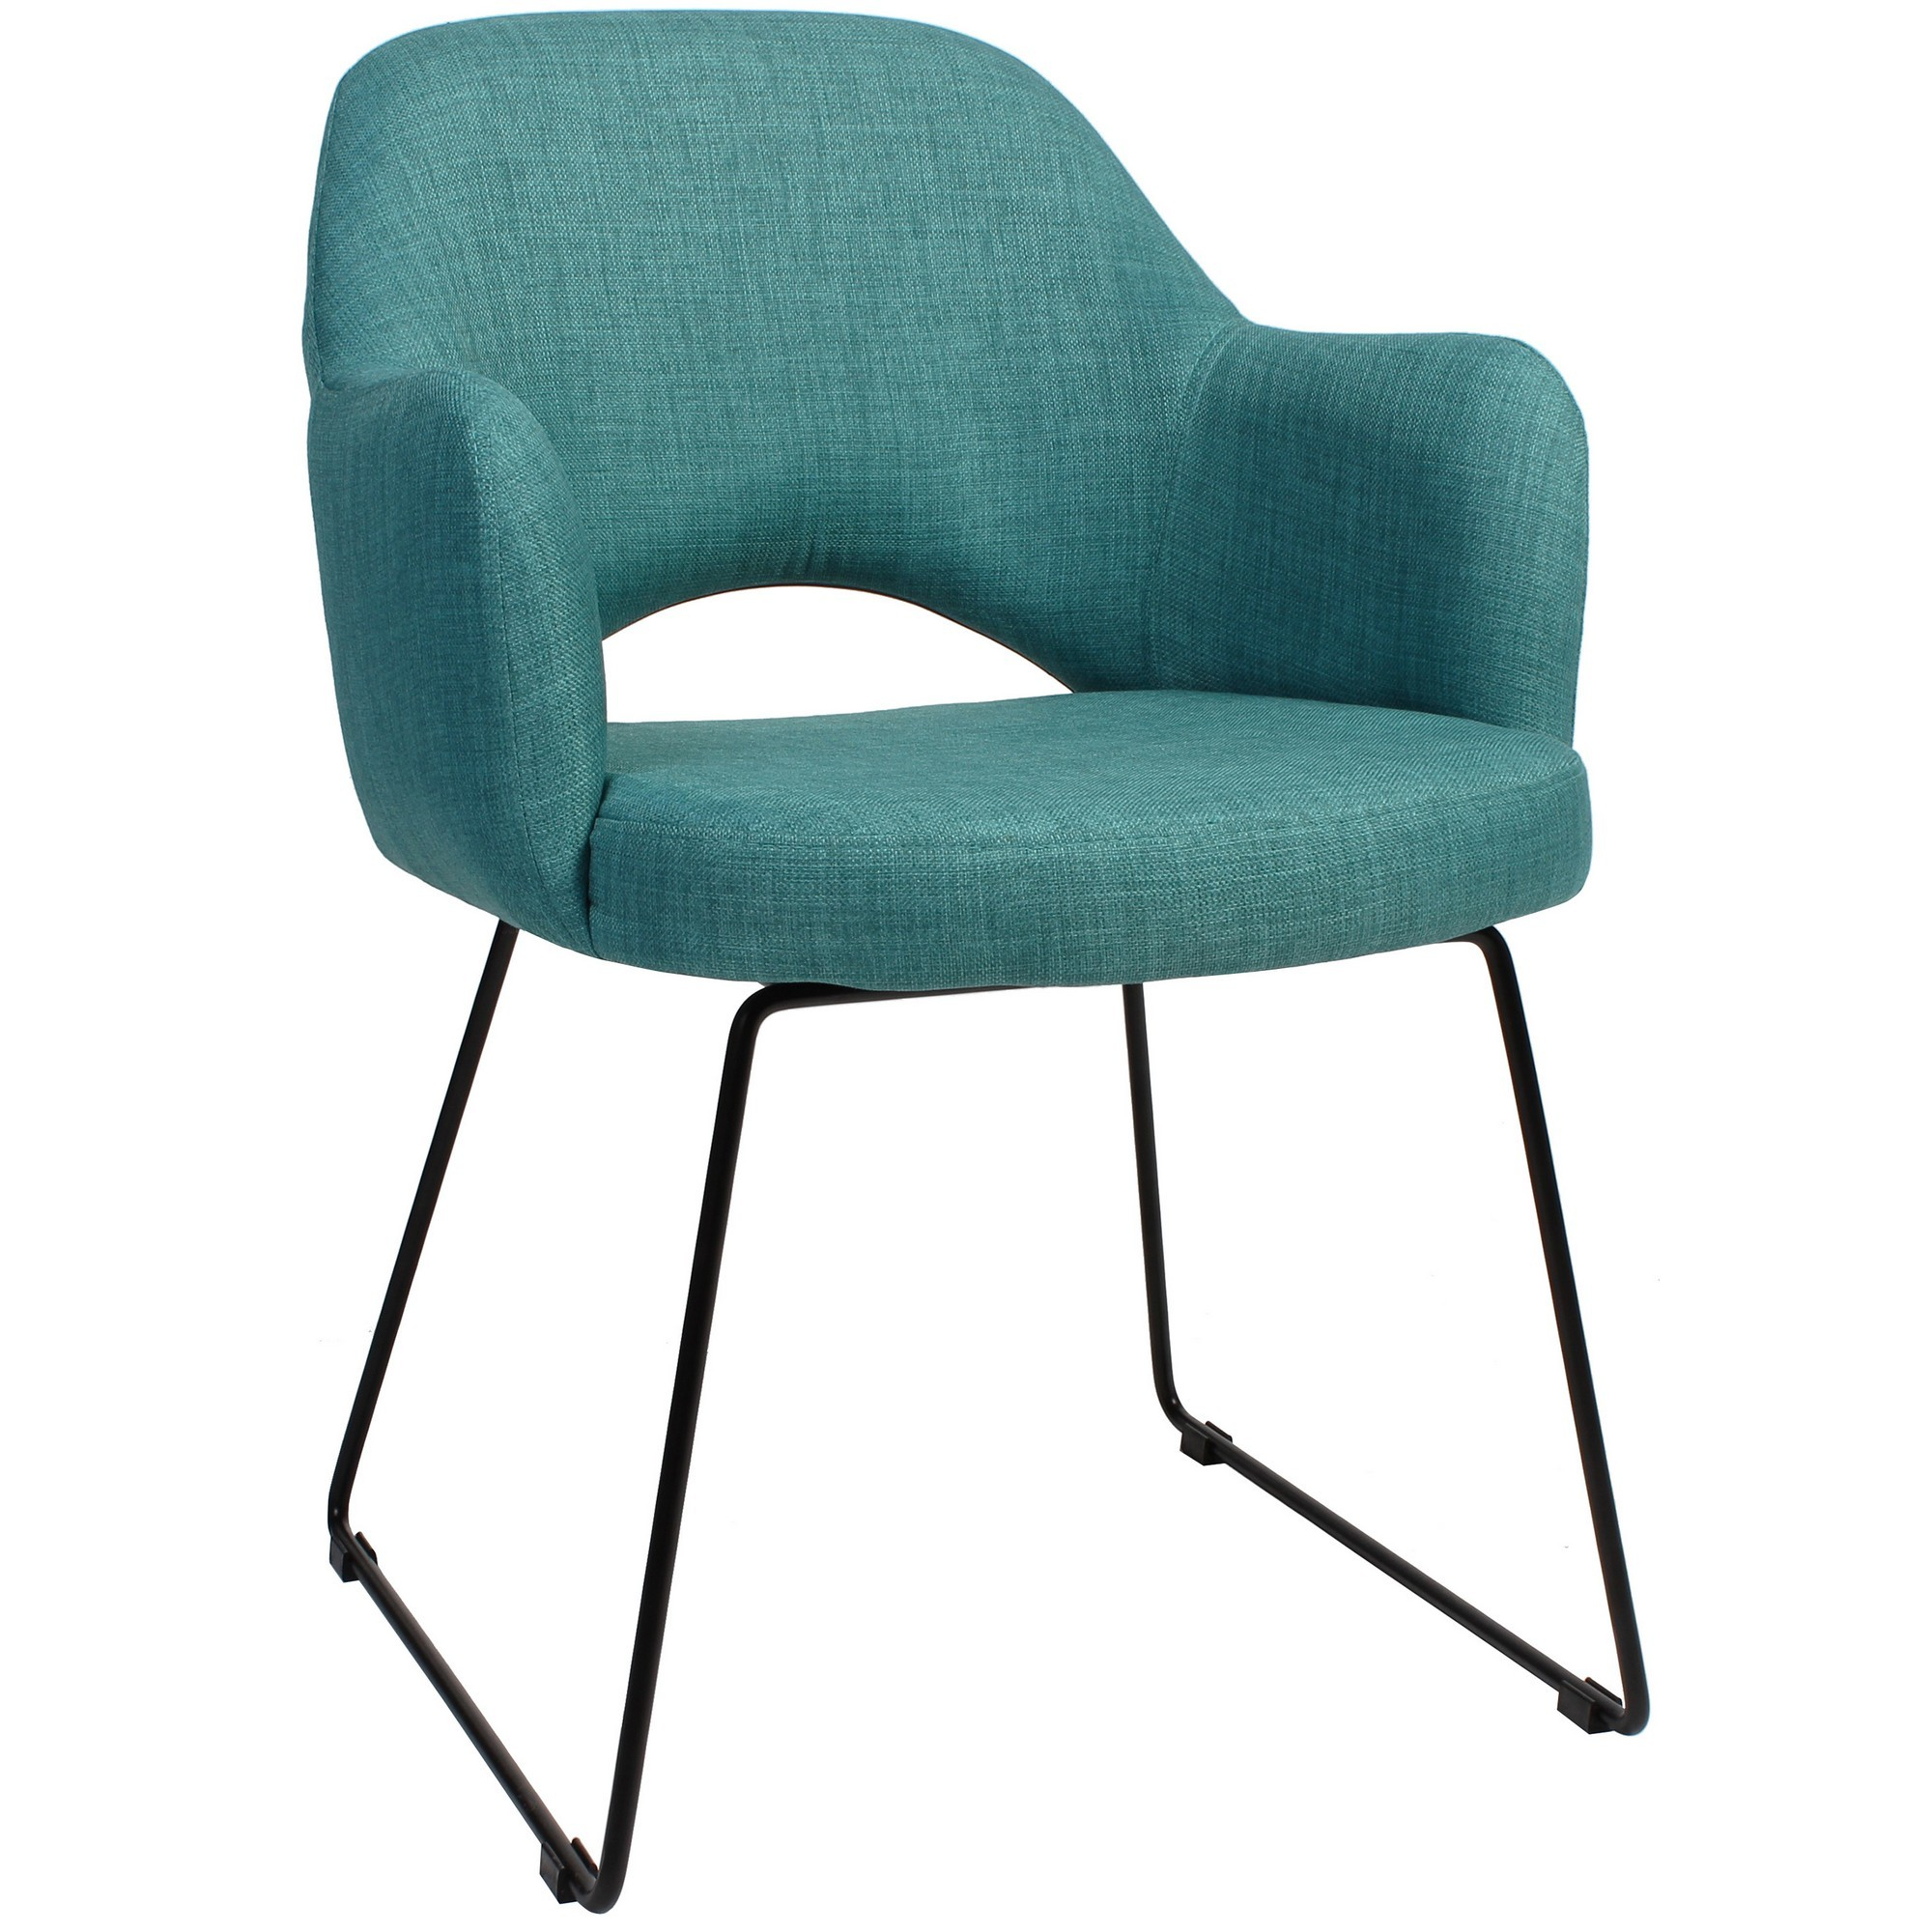 Albury Commercial Grade Fabric Dining Armchair, Metal Sled Leg, Teal / Black